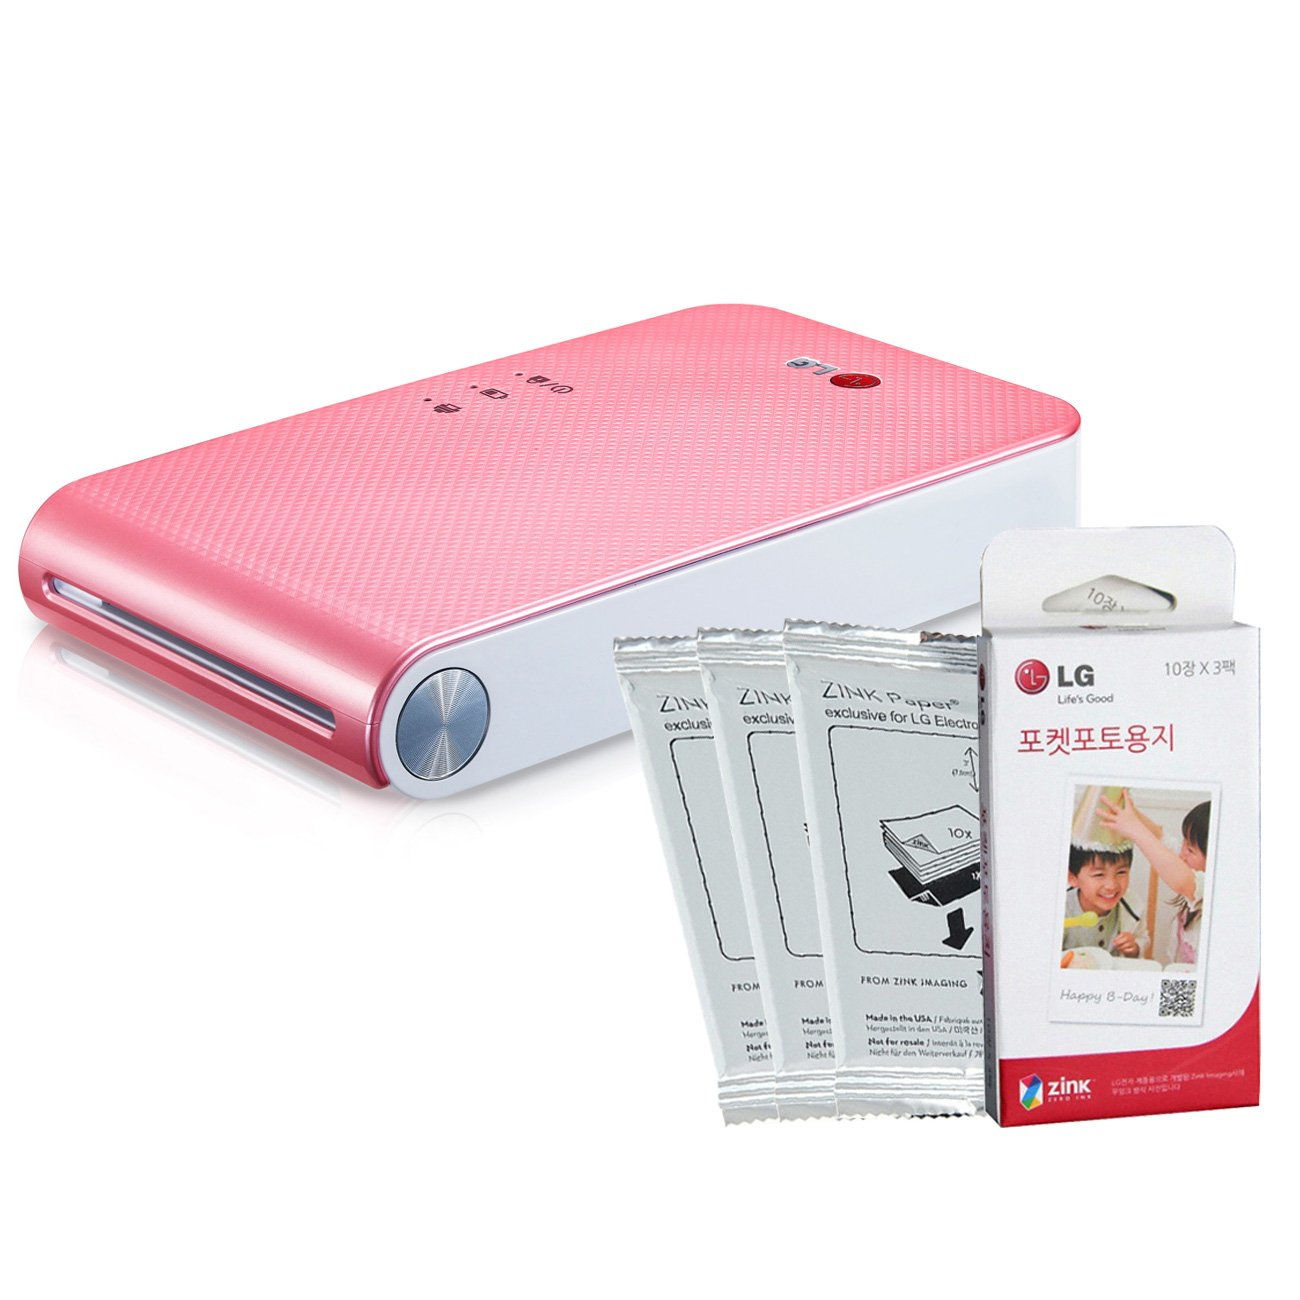 LG-PoPo-Pocket-Photo-2-PD239-Pink-Mini-Portable-Mobile-Photo-Printer-30-Zink-Paper-Sheet-for-Android-iOS